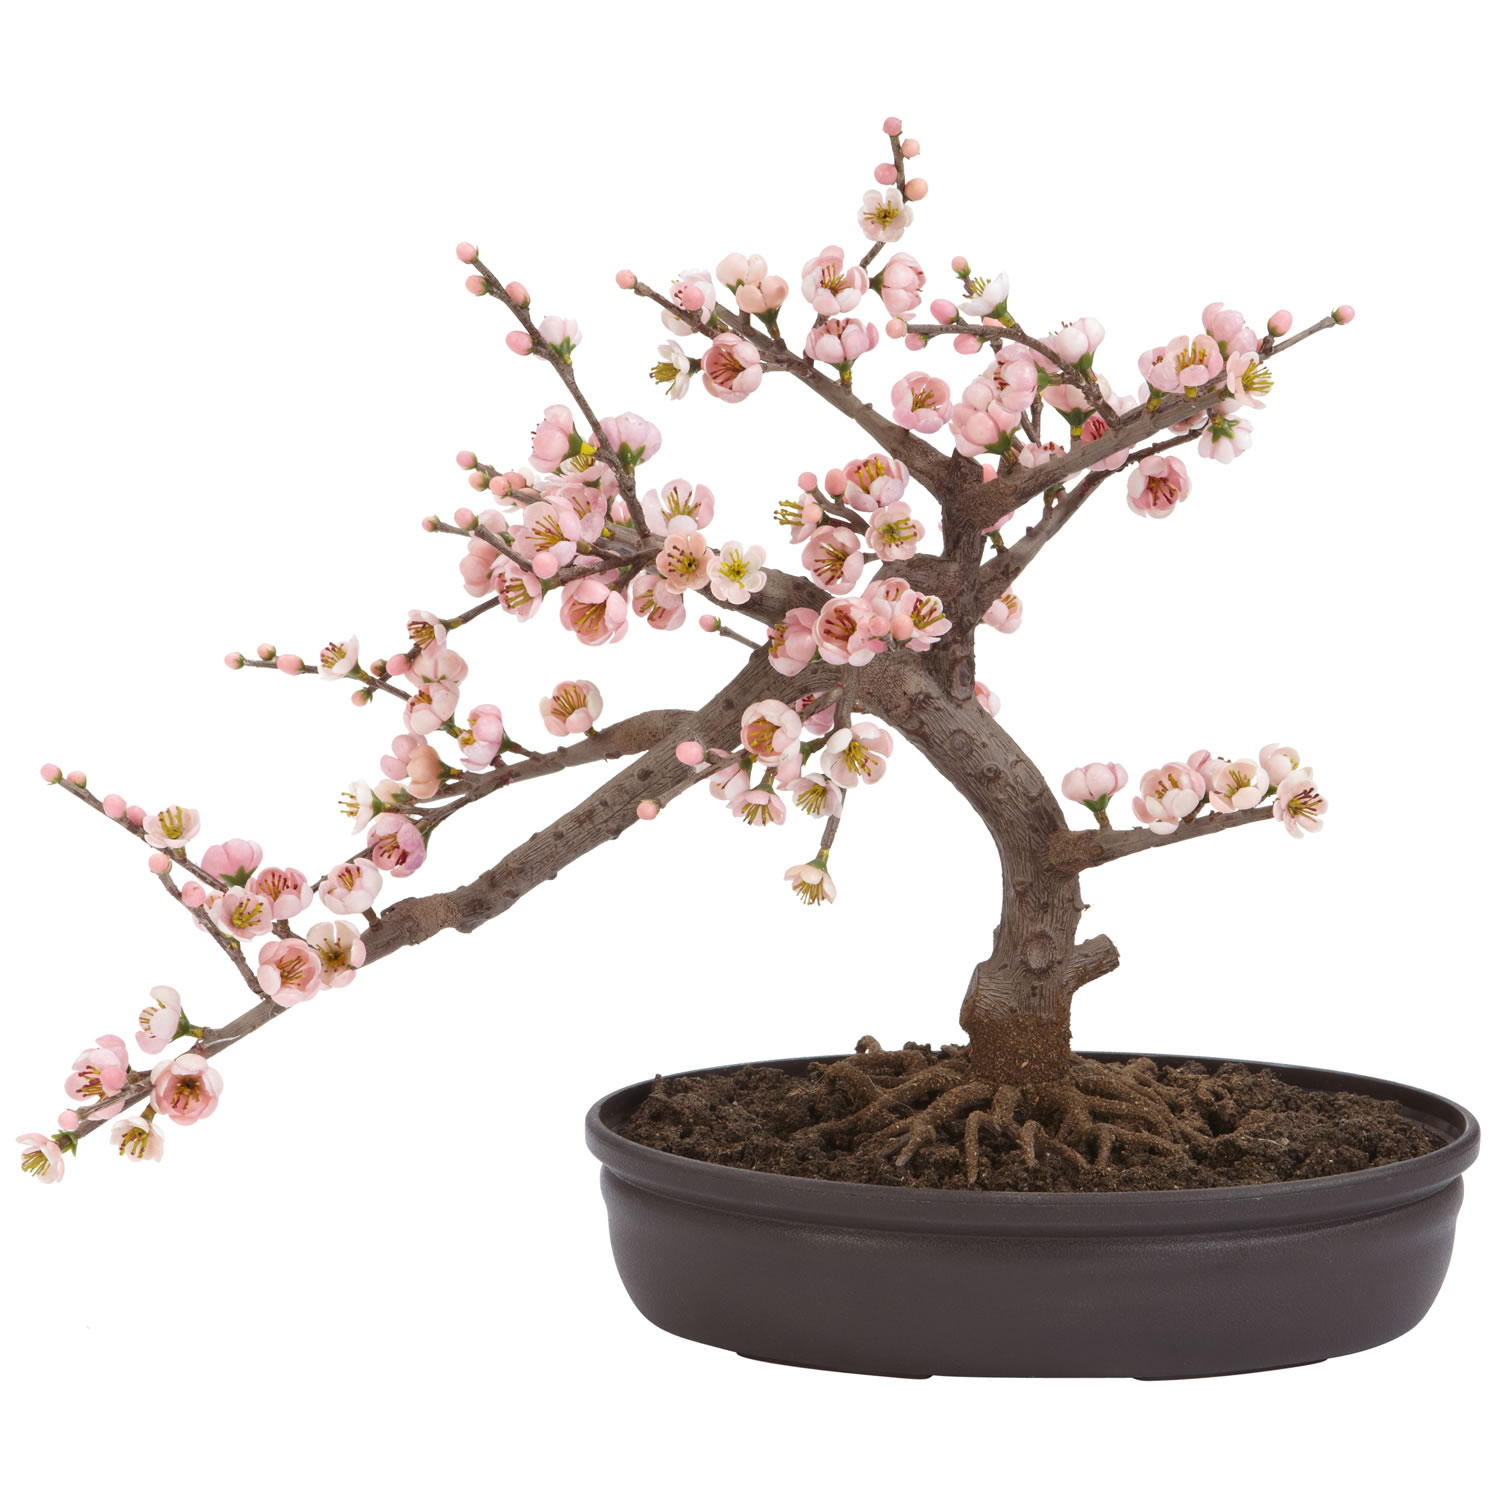 My Enchanting Silk Garden Silk Cherry Blossom Bonsai Tree